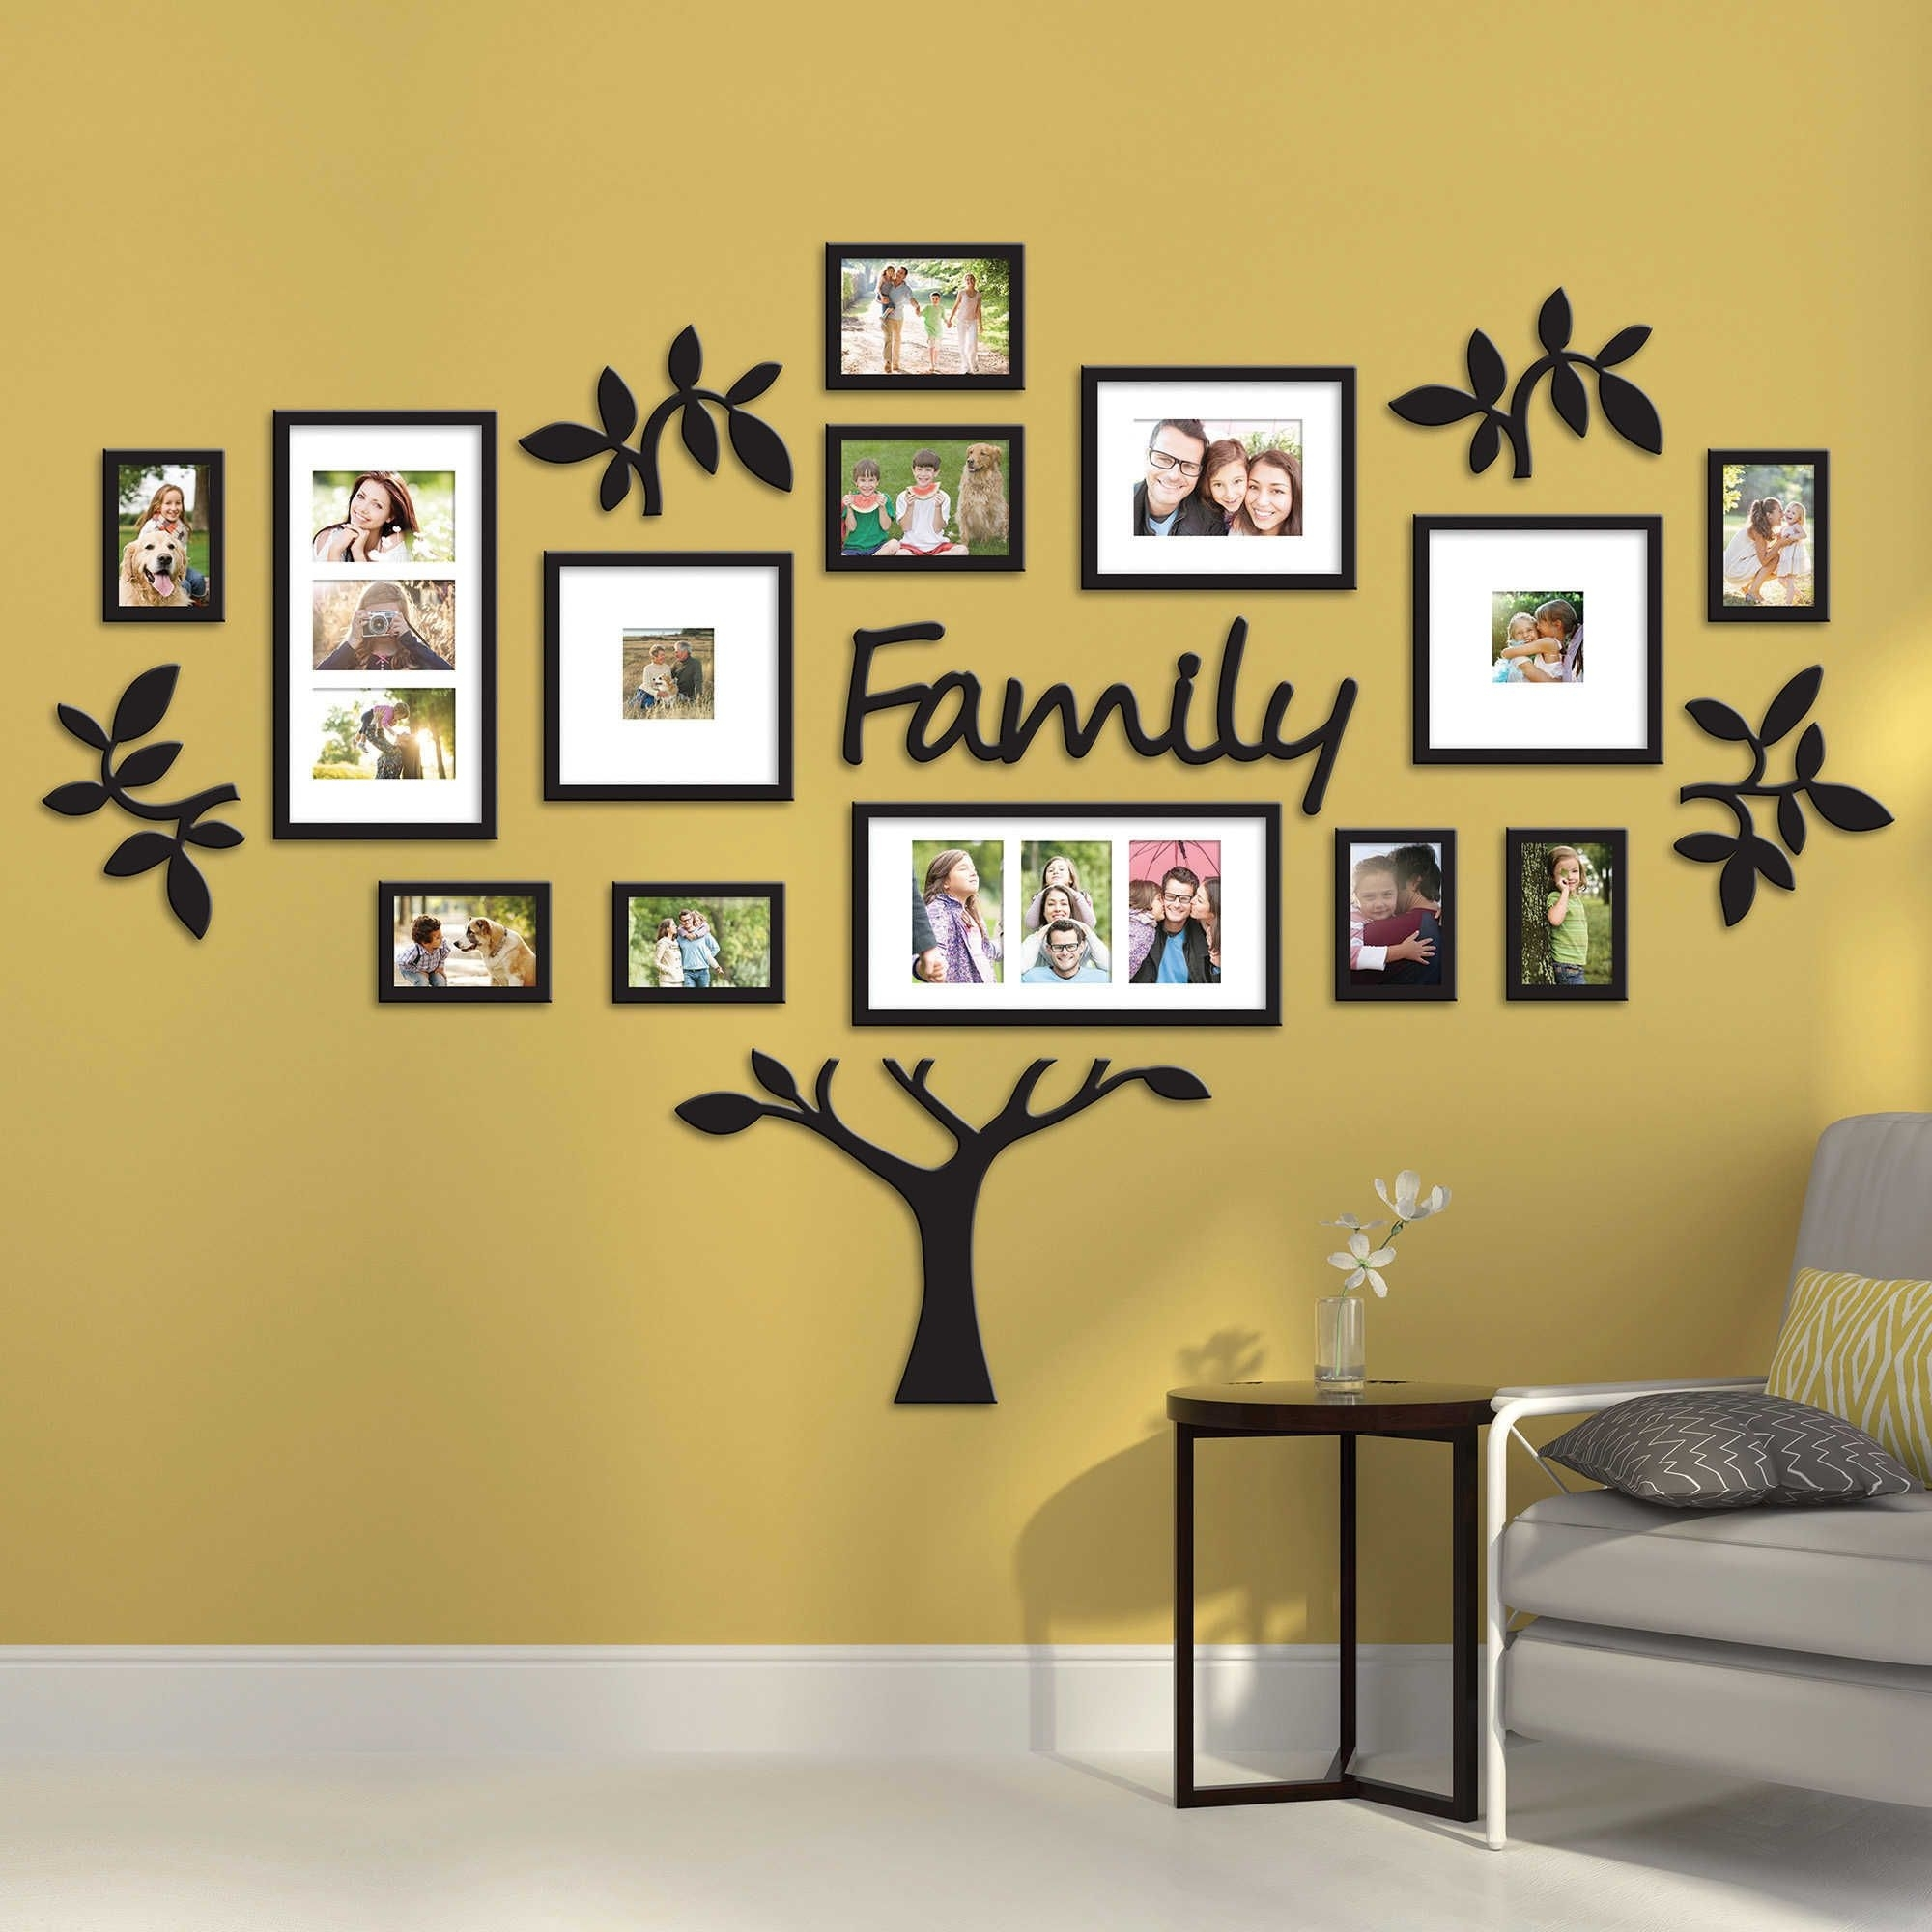 Wallverbs™ 19 Piece Family Tree Set | Home Decor Inspiration Throughout Latest Family Tree Wall Art (View 15 of 15)